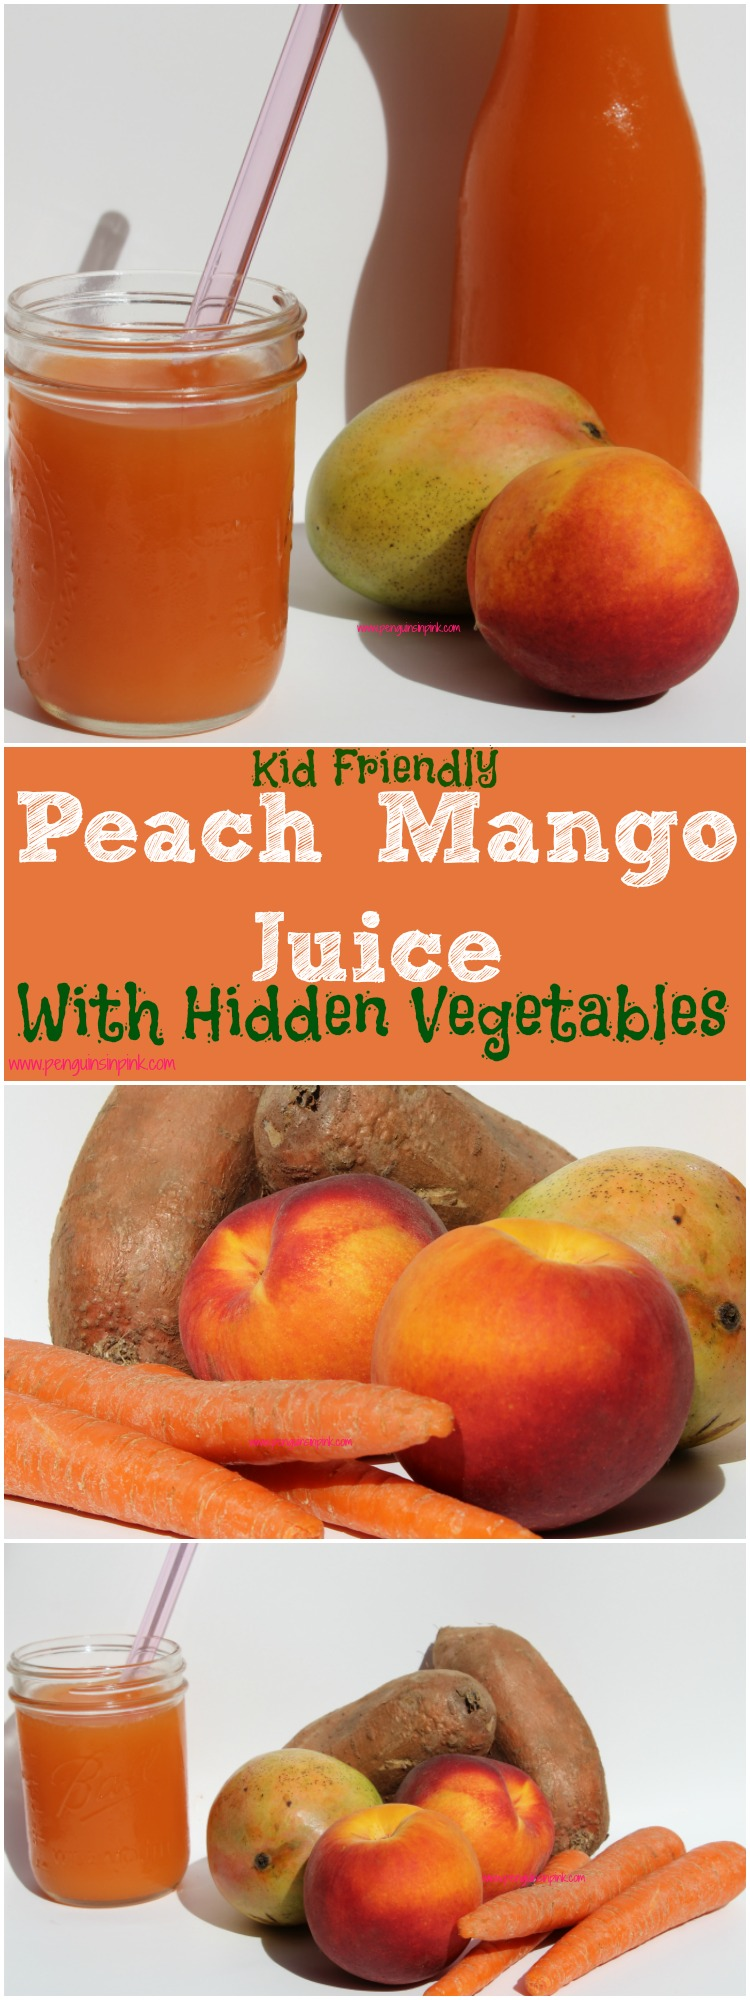 Peach Mango Juice with Hidden Vegetables - 4 wholesome ingredients peaches, mango, sweet potato, and carrots! Such a tasty way to sneak in some veggies for those picky eaters.